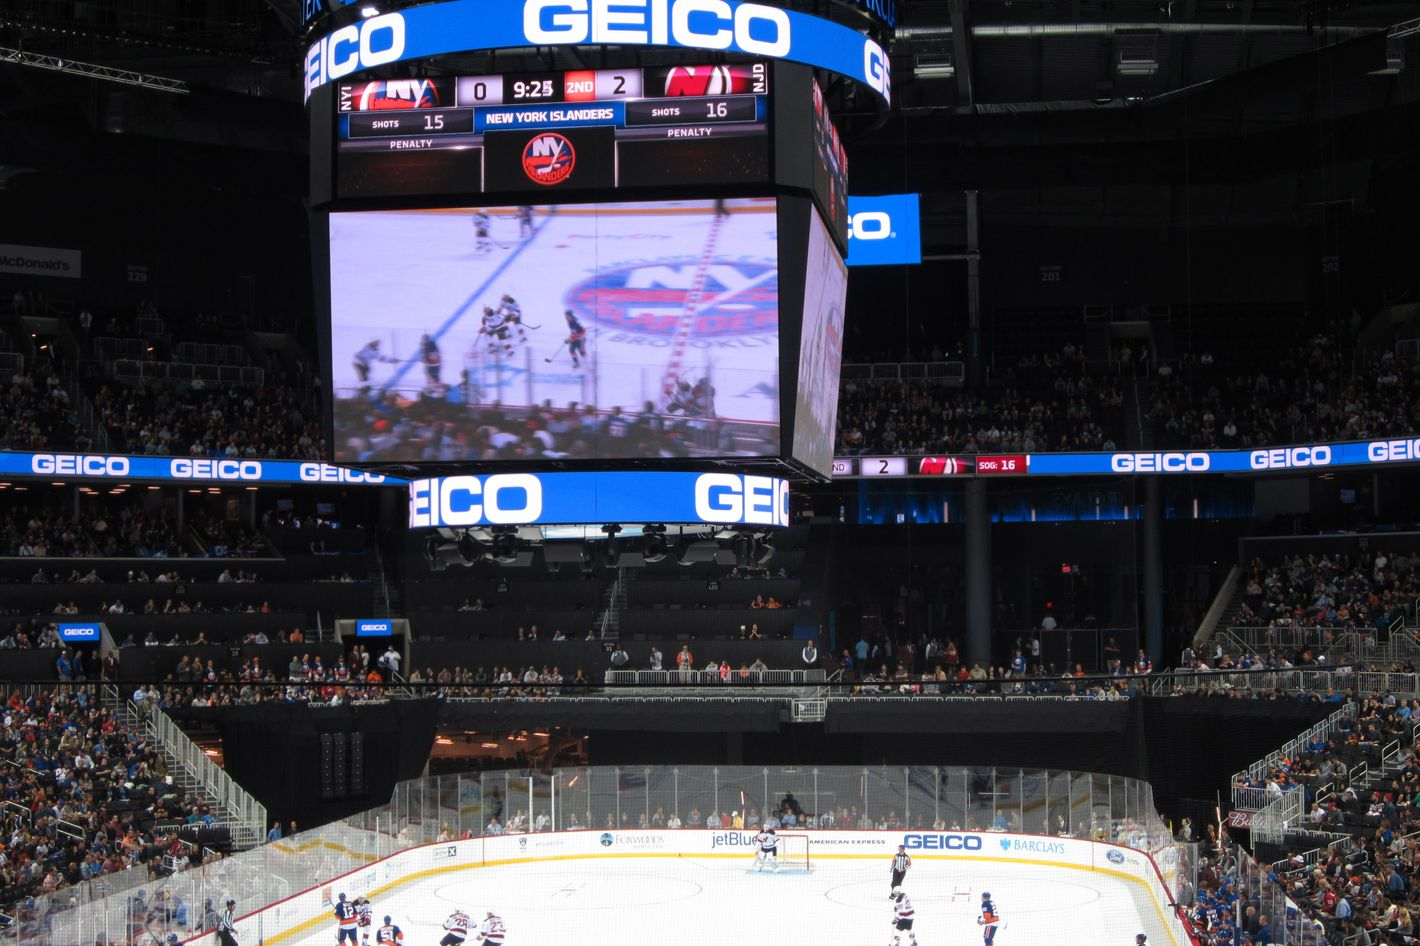 There are some pretty bad seats for hockey at barclays center